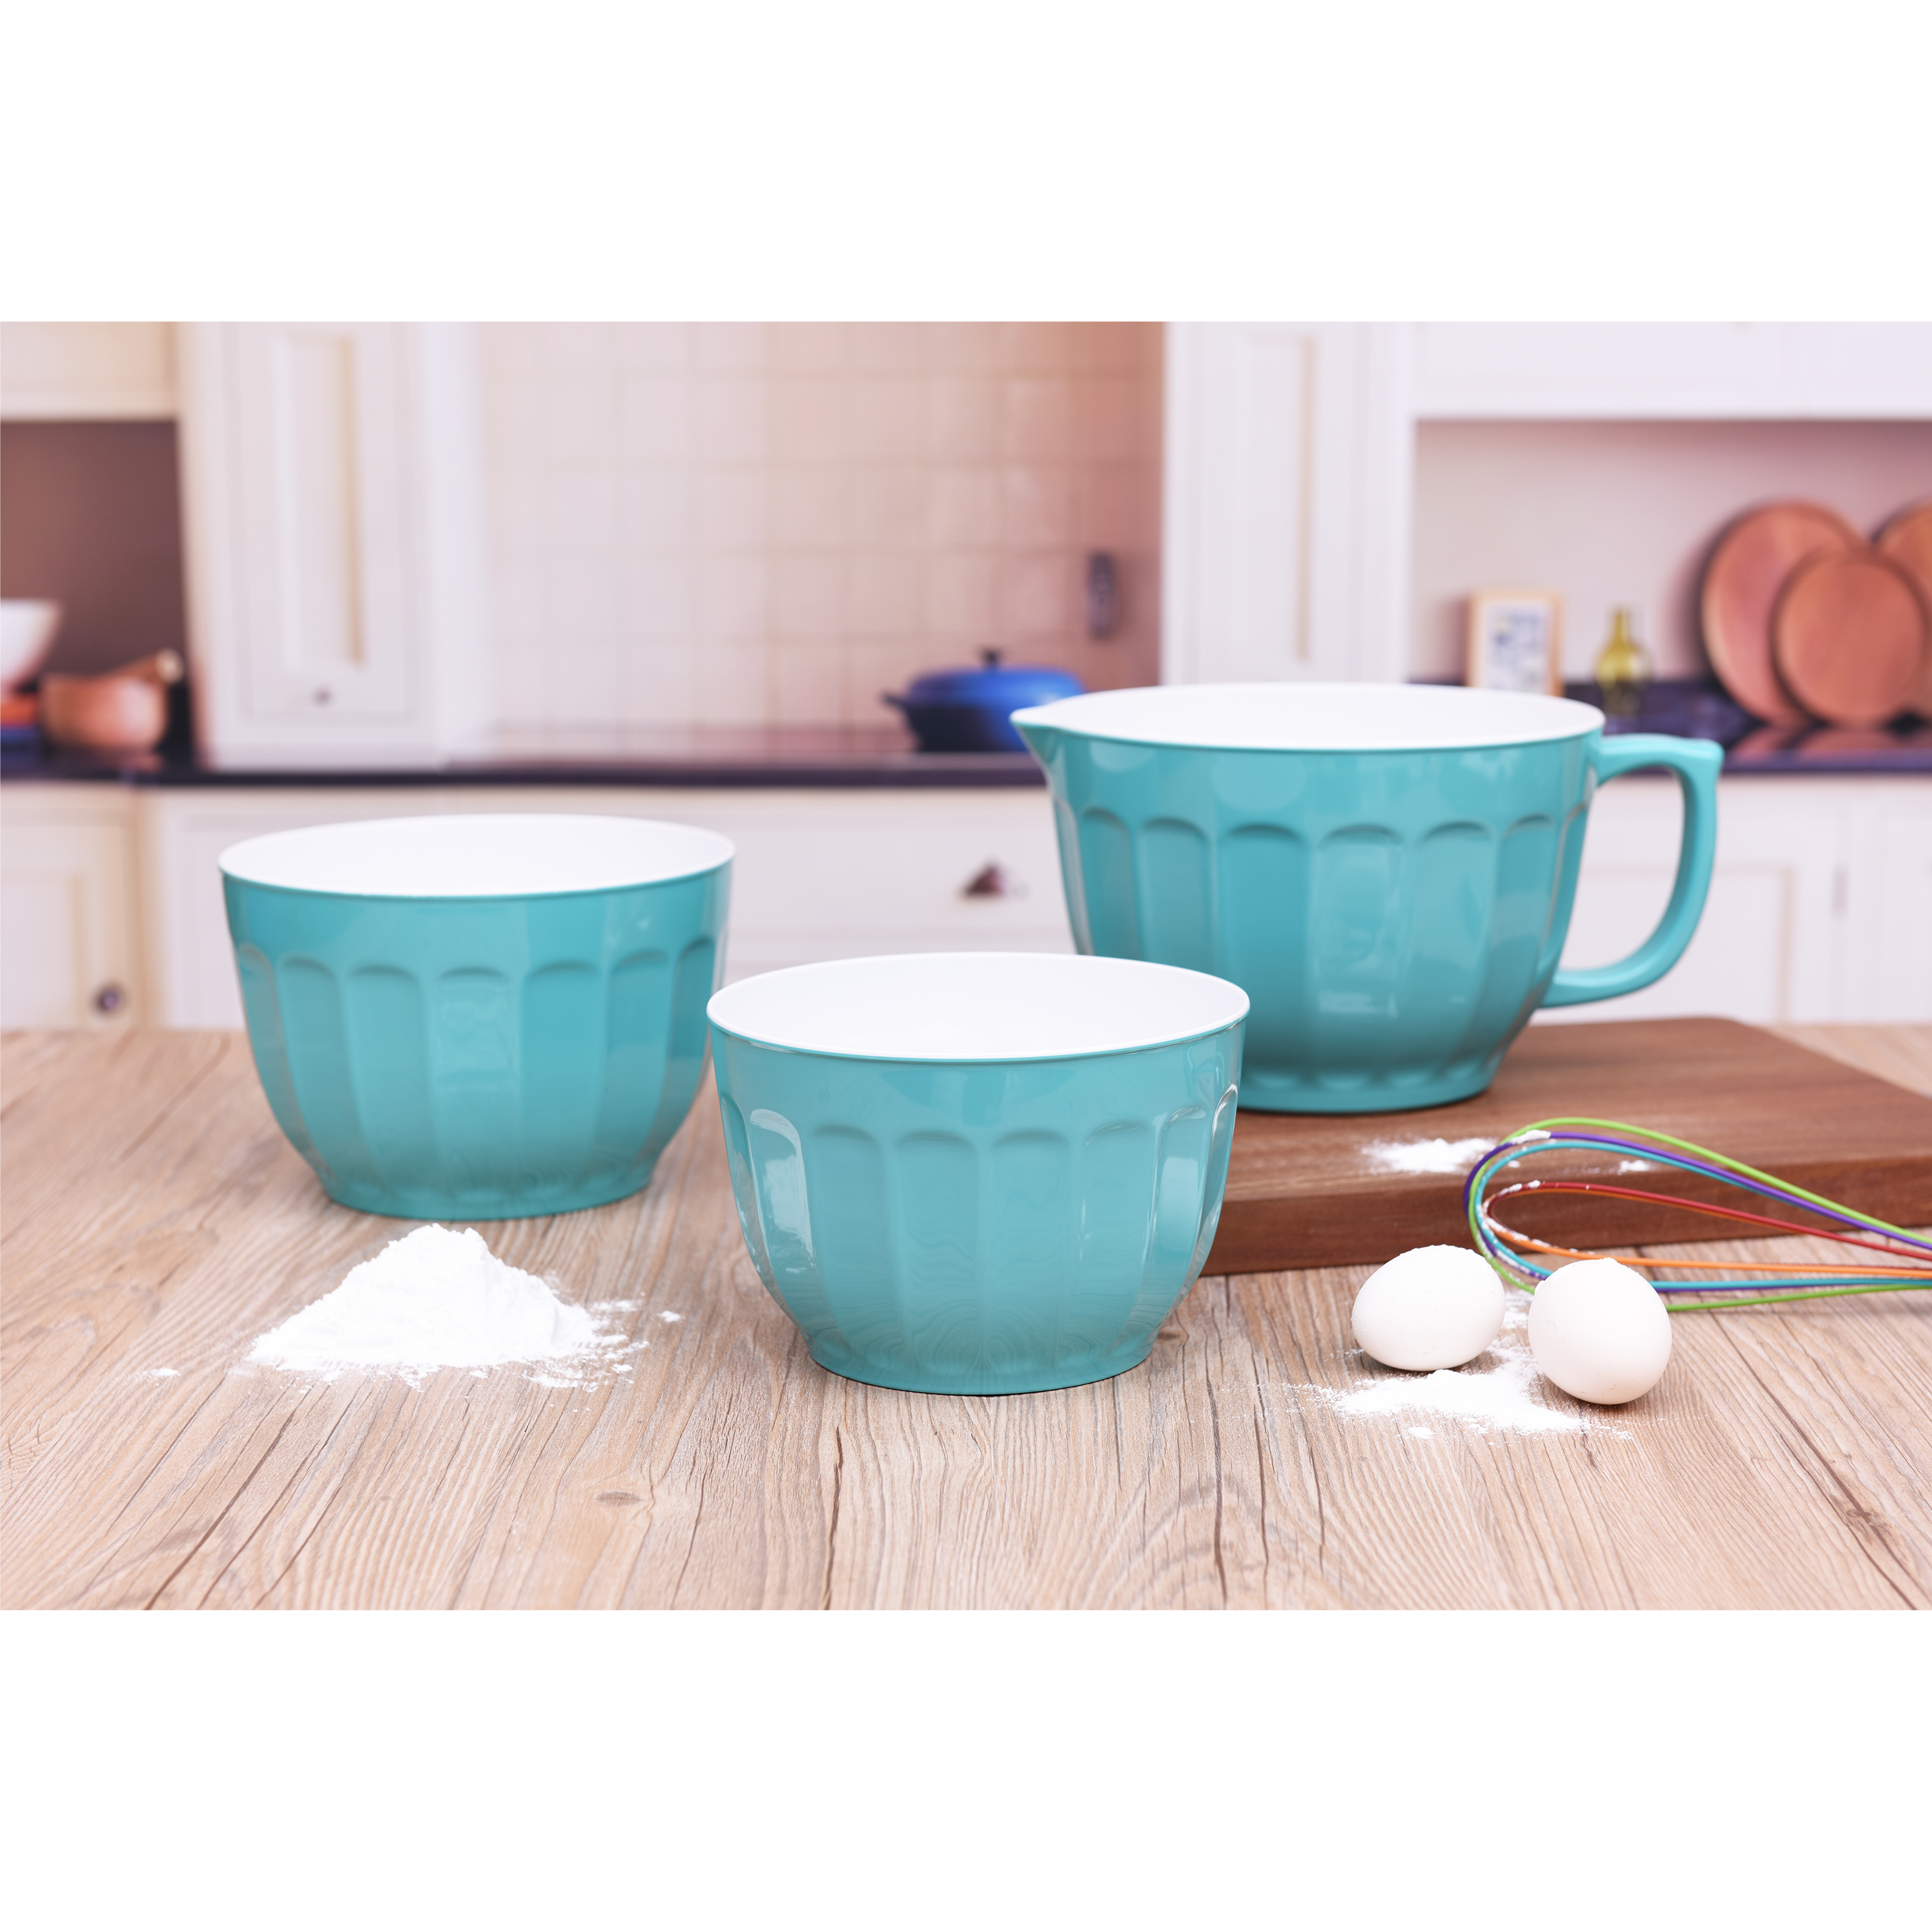 Mainstays 3 Piece Batter Bowl Set